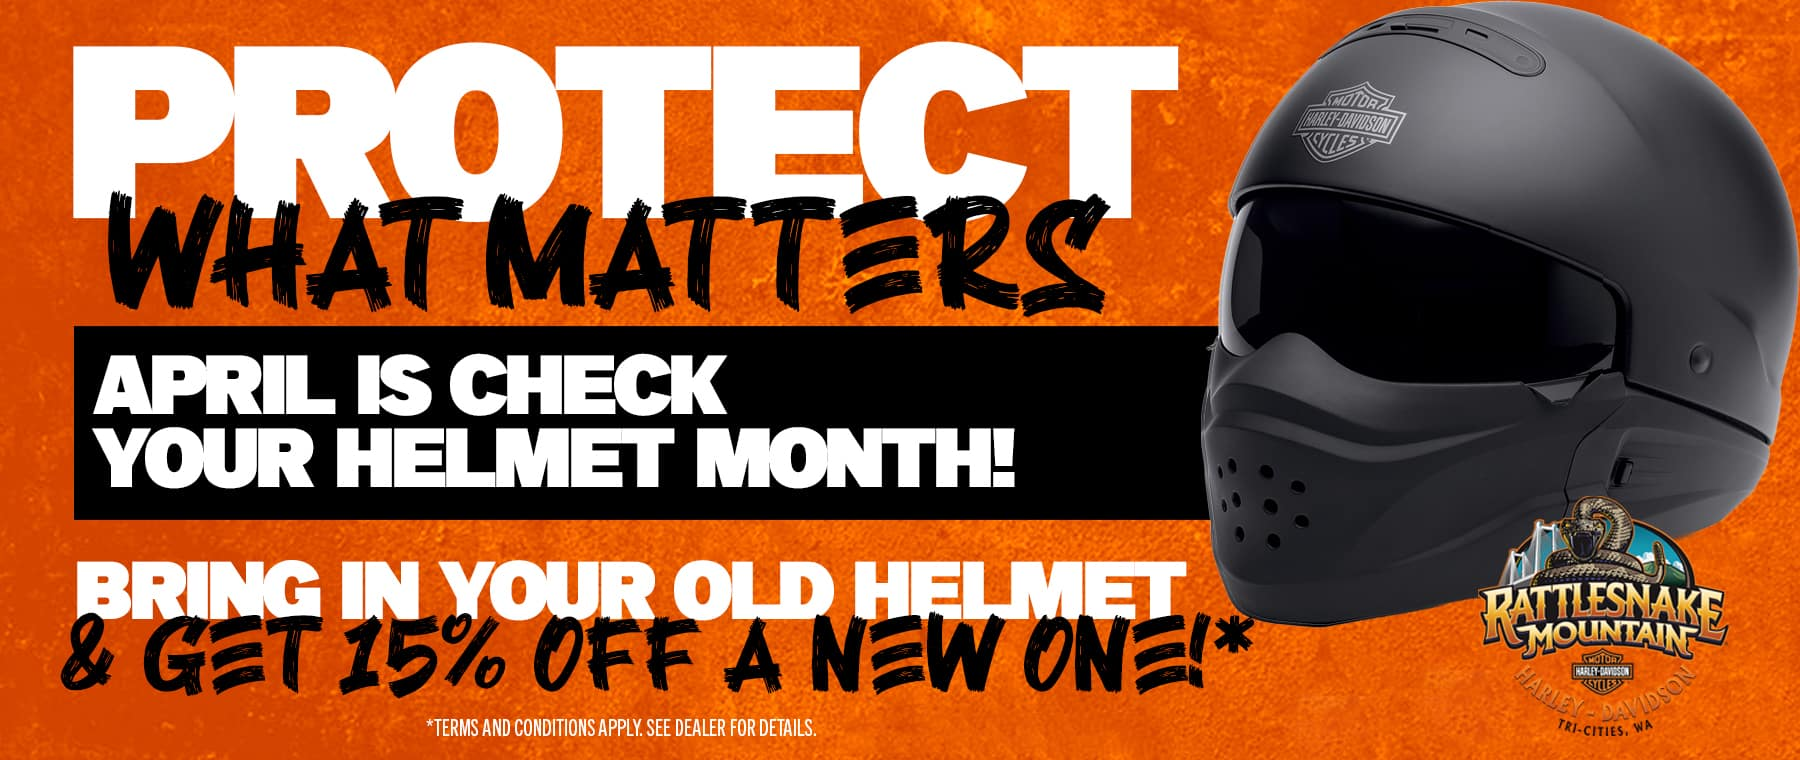 April is helmet month!